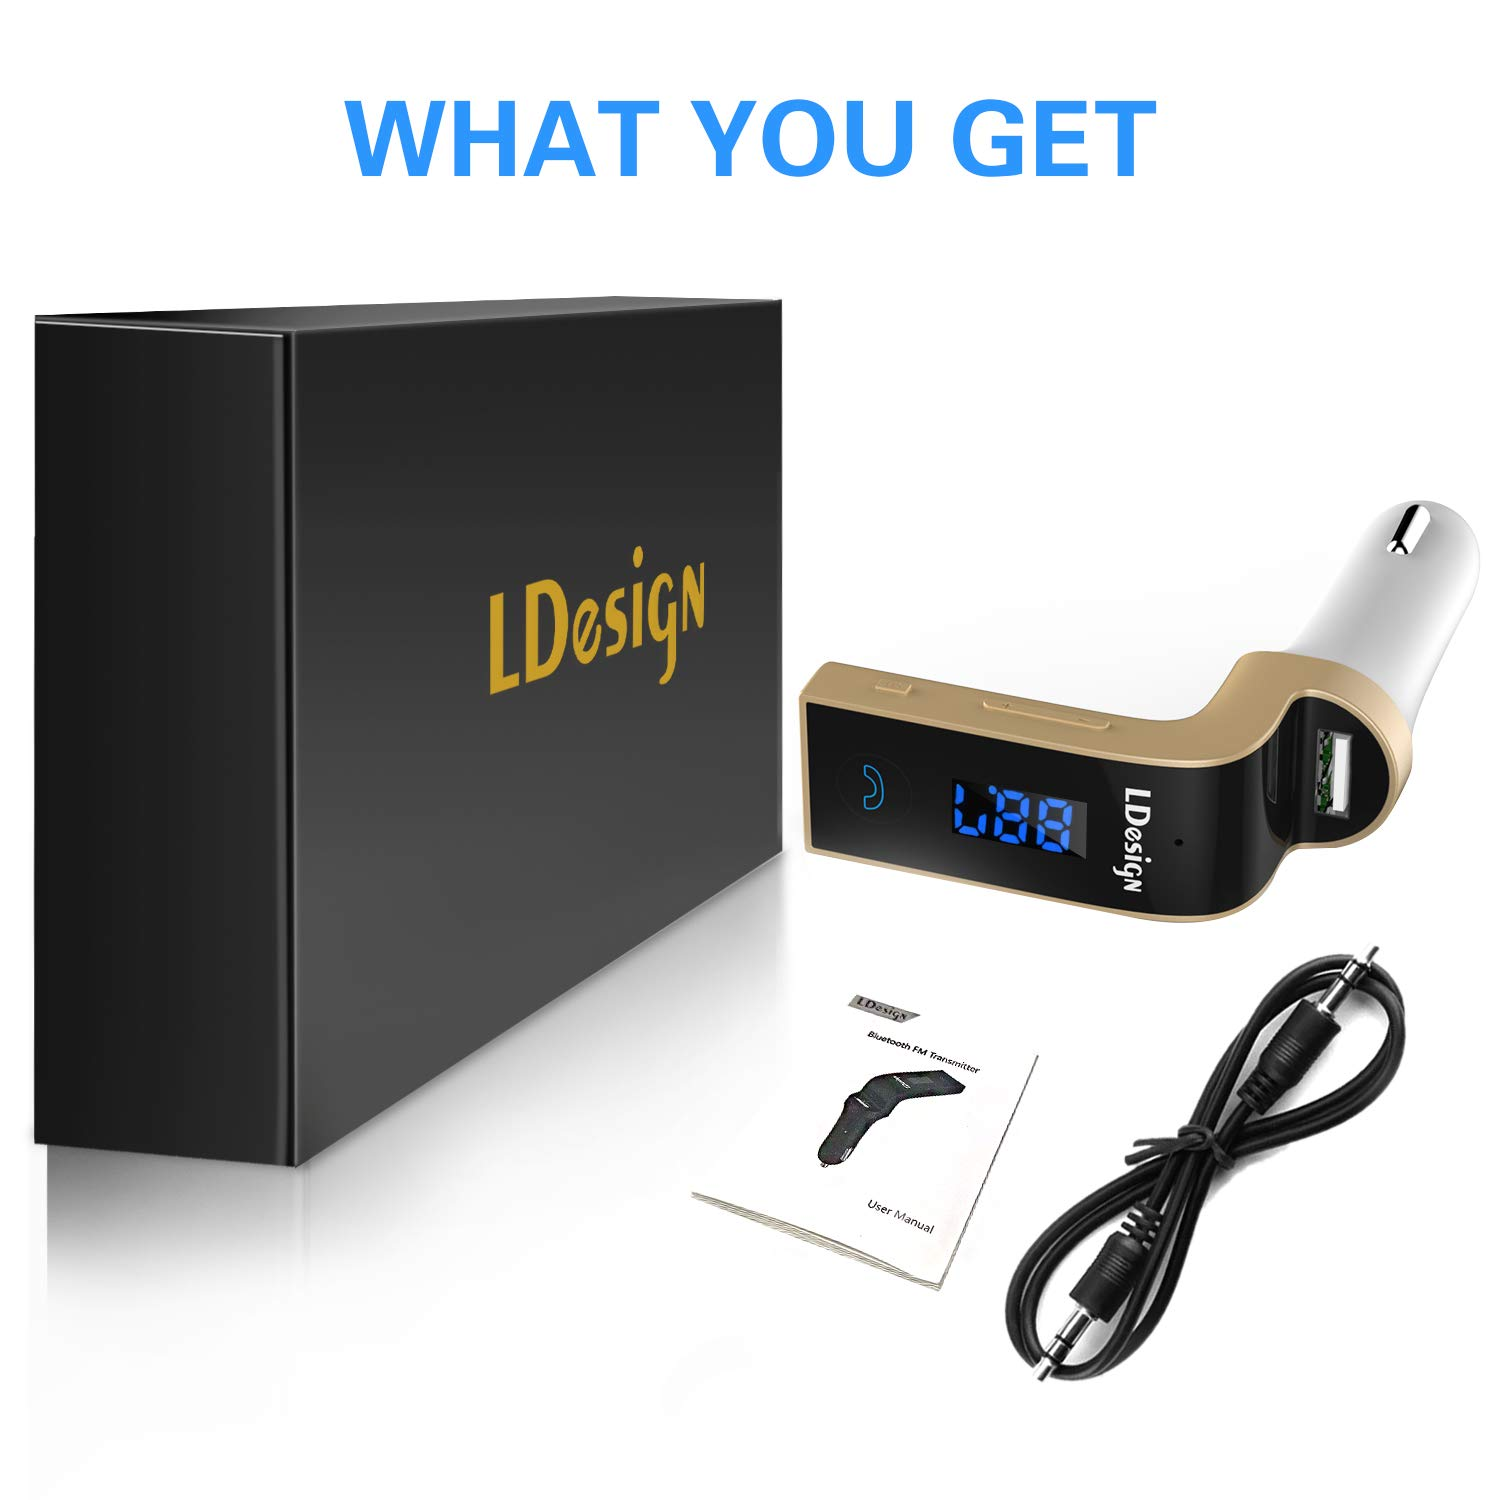 FM Transmitter, LDesign Bluetooth Wireless in-Car FM Radio Adapter Car Kit with Hand Free Call | Stereo 4 Modes Music Play | TF Card &U-Disk Reading Applicable for All Smart Phones -Gold by LDesign (Image #1)